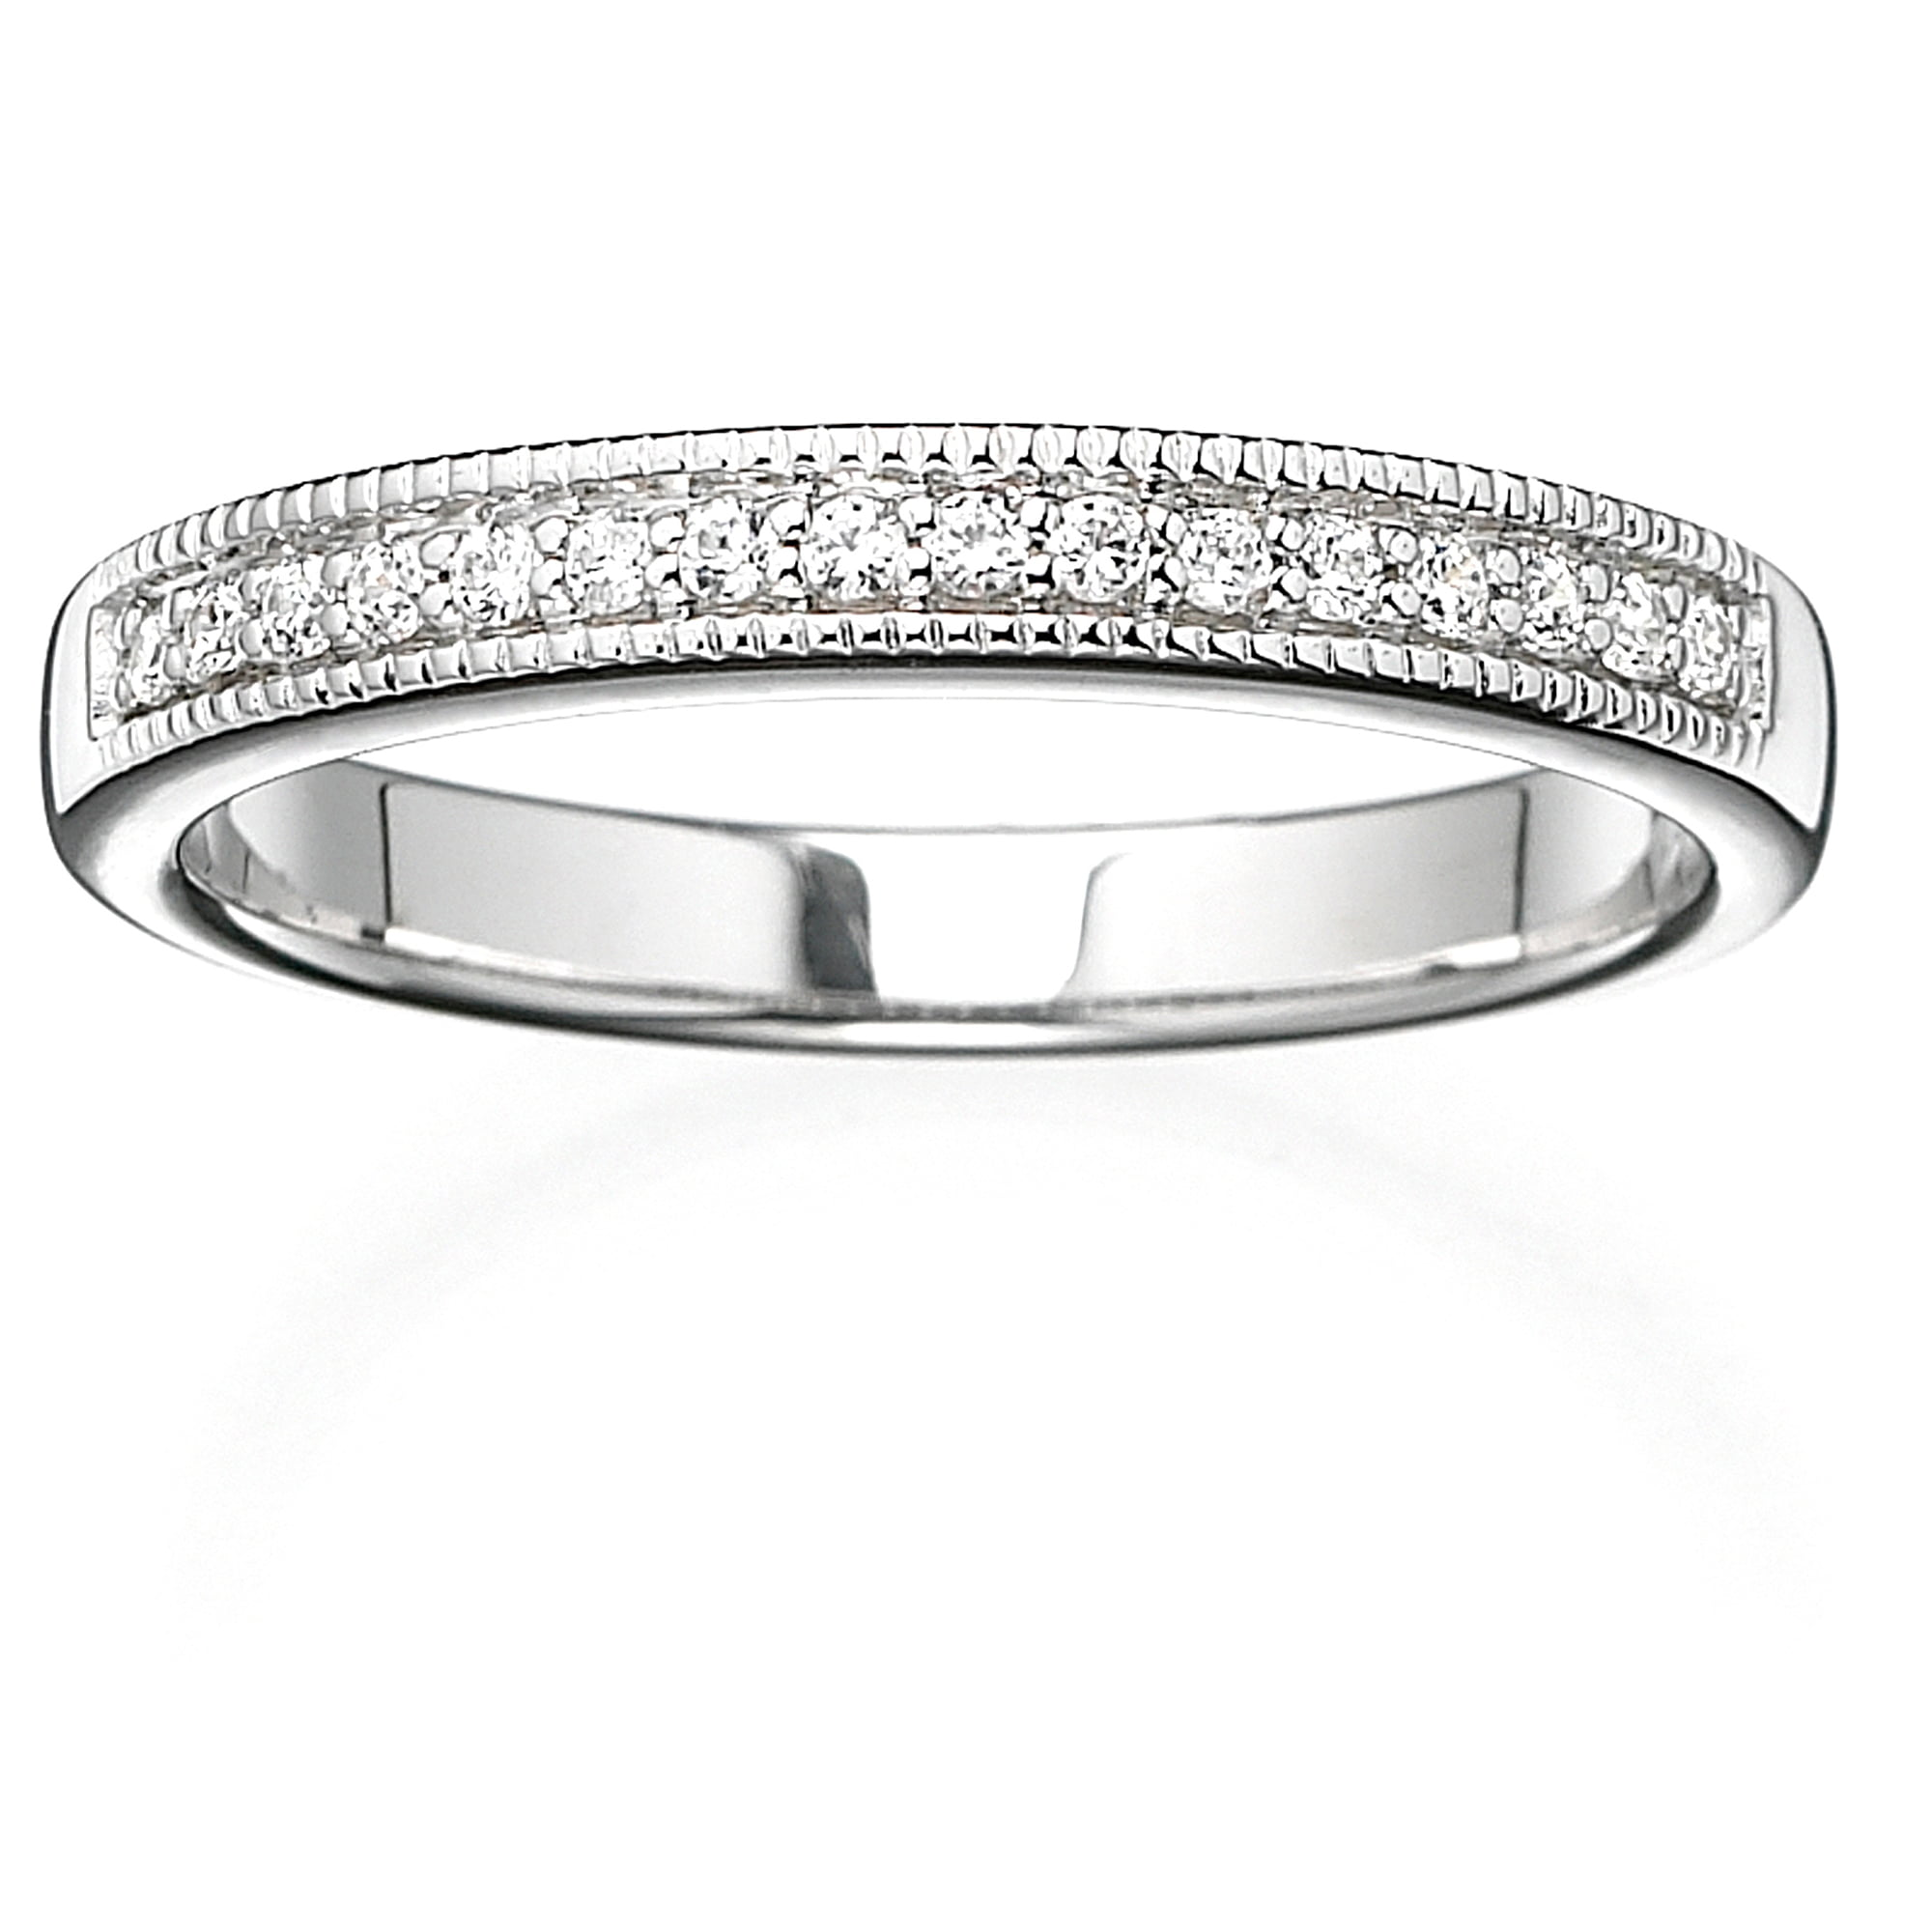 Always & Forever Platinaire 1 8 Carat T.W. Diamond Milgrain Wedding Band by Generic